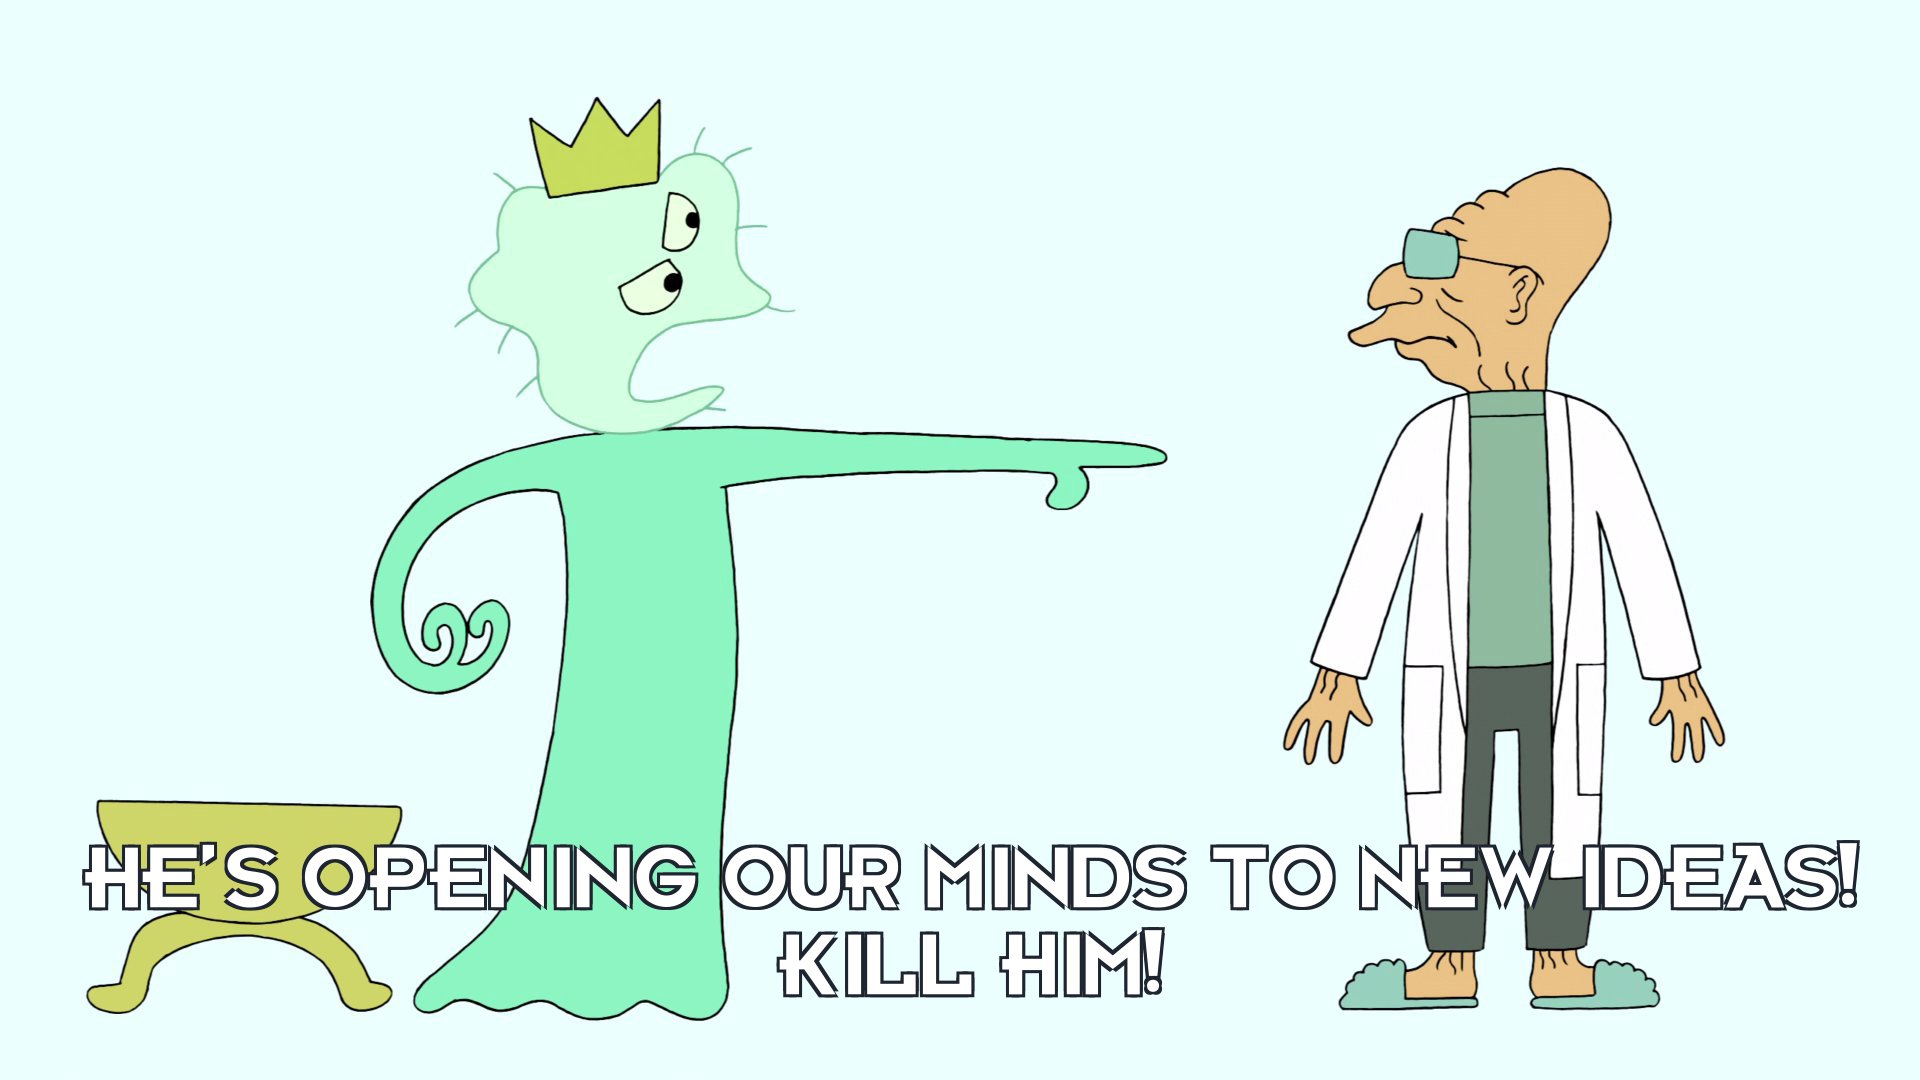 King of Flatbush: He's opening our minds to new ideas! Kill him!